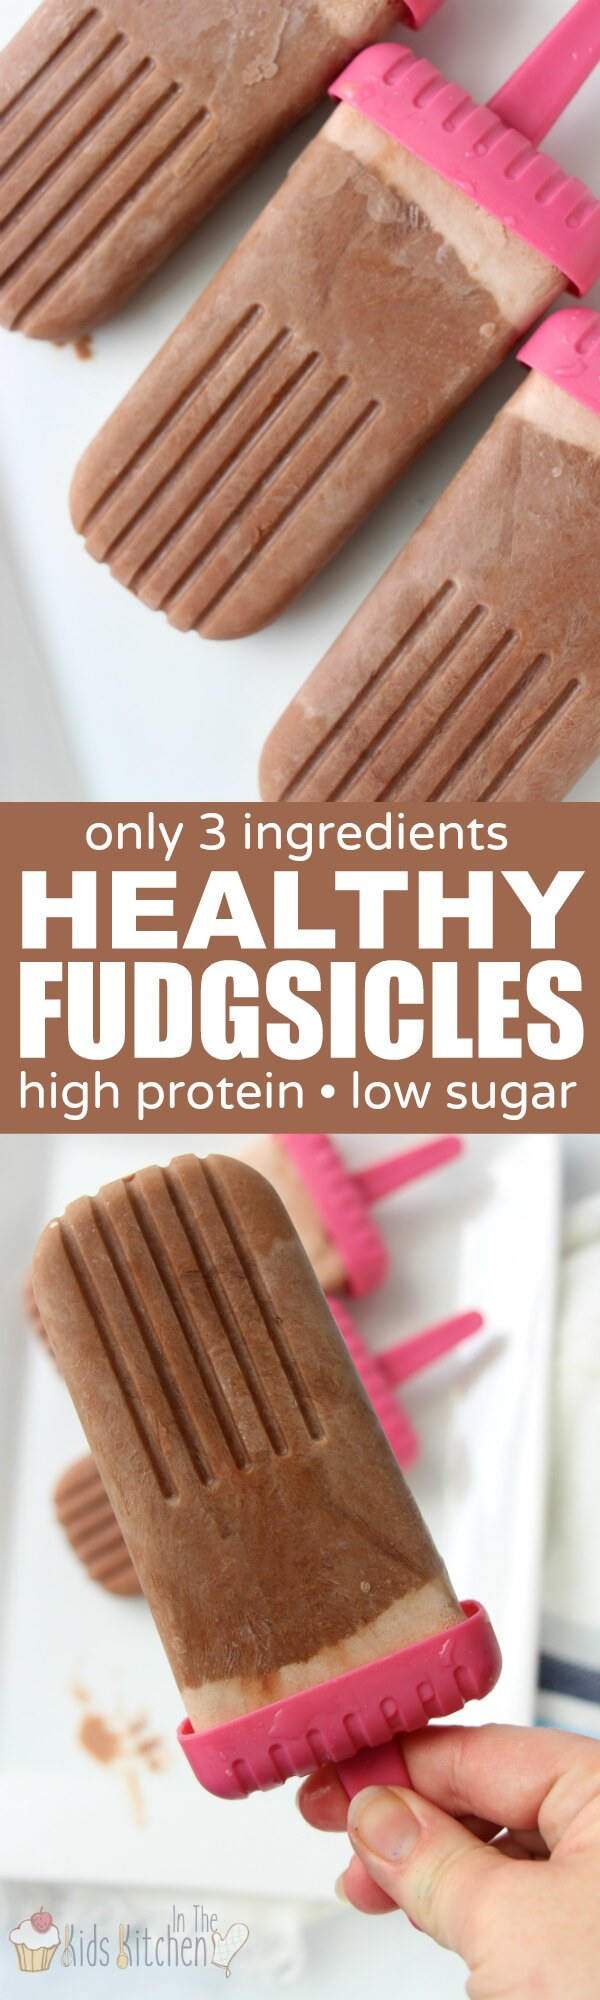 Healthy homemade fudgsicles that won't break your diet and you can feel good about serving the kids too!High in protein, a good source of calcium, and only 3 ingredients!